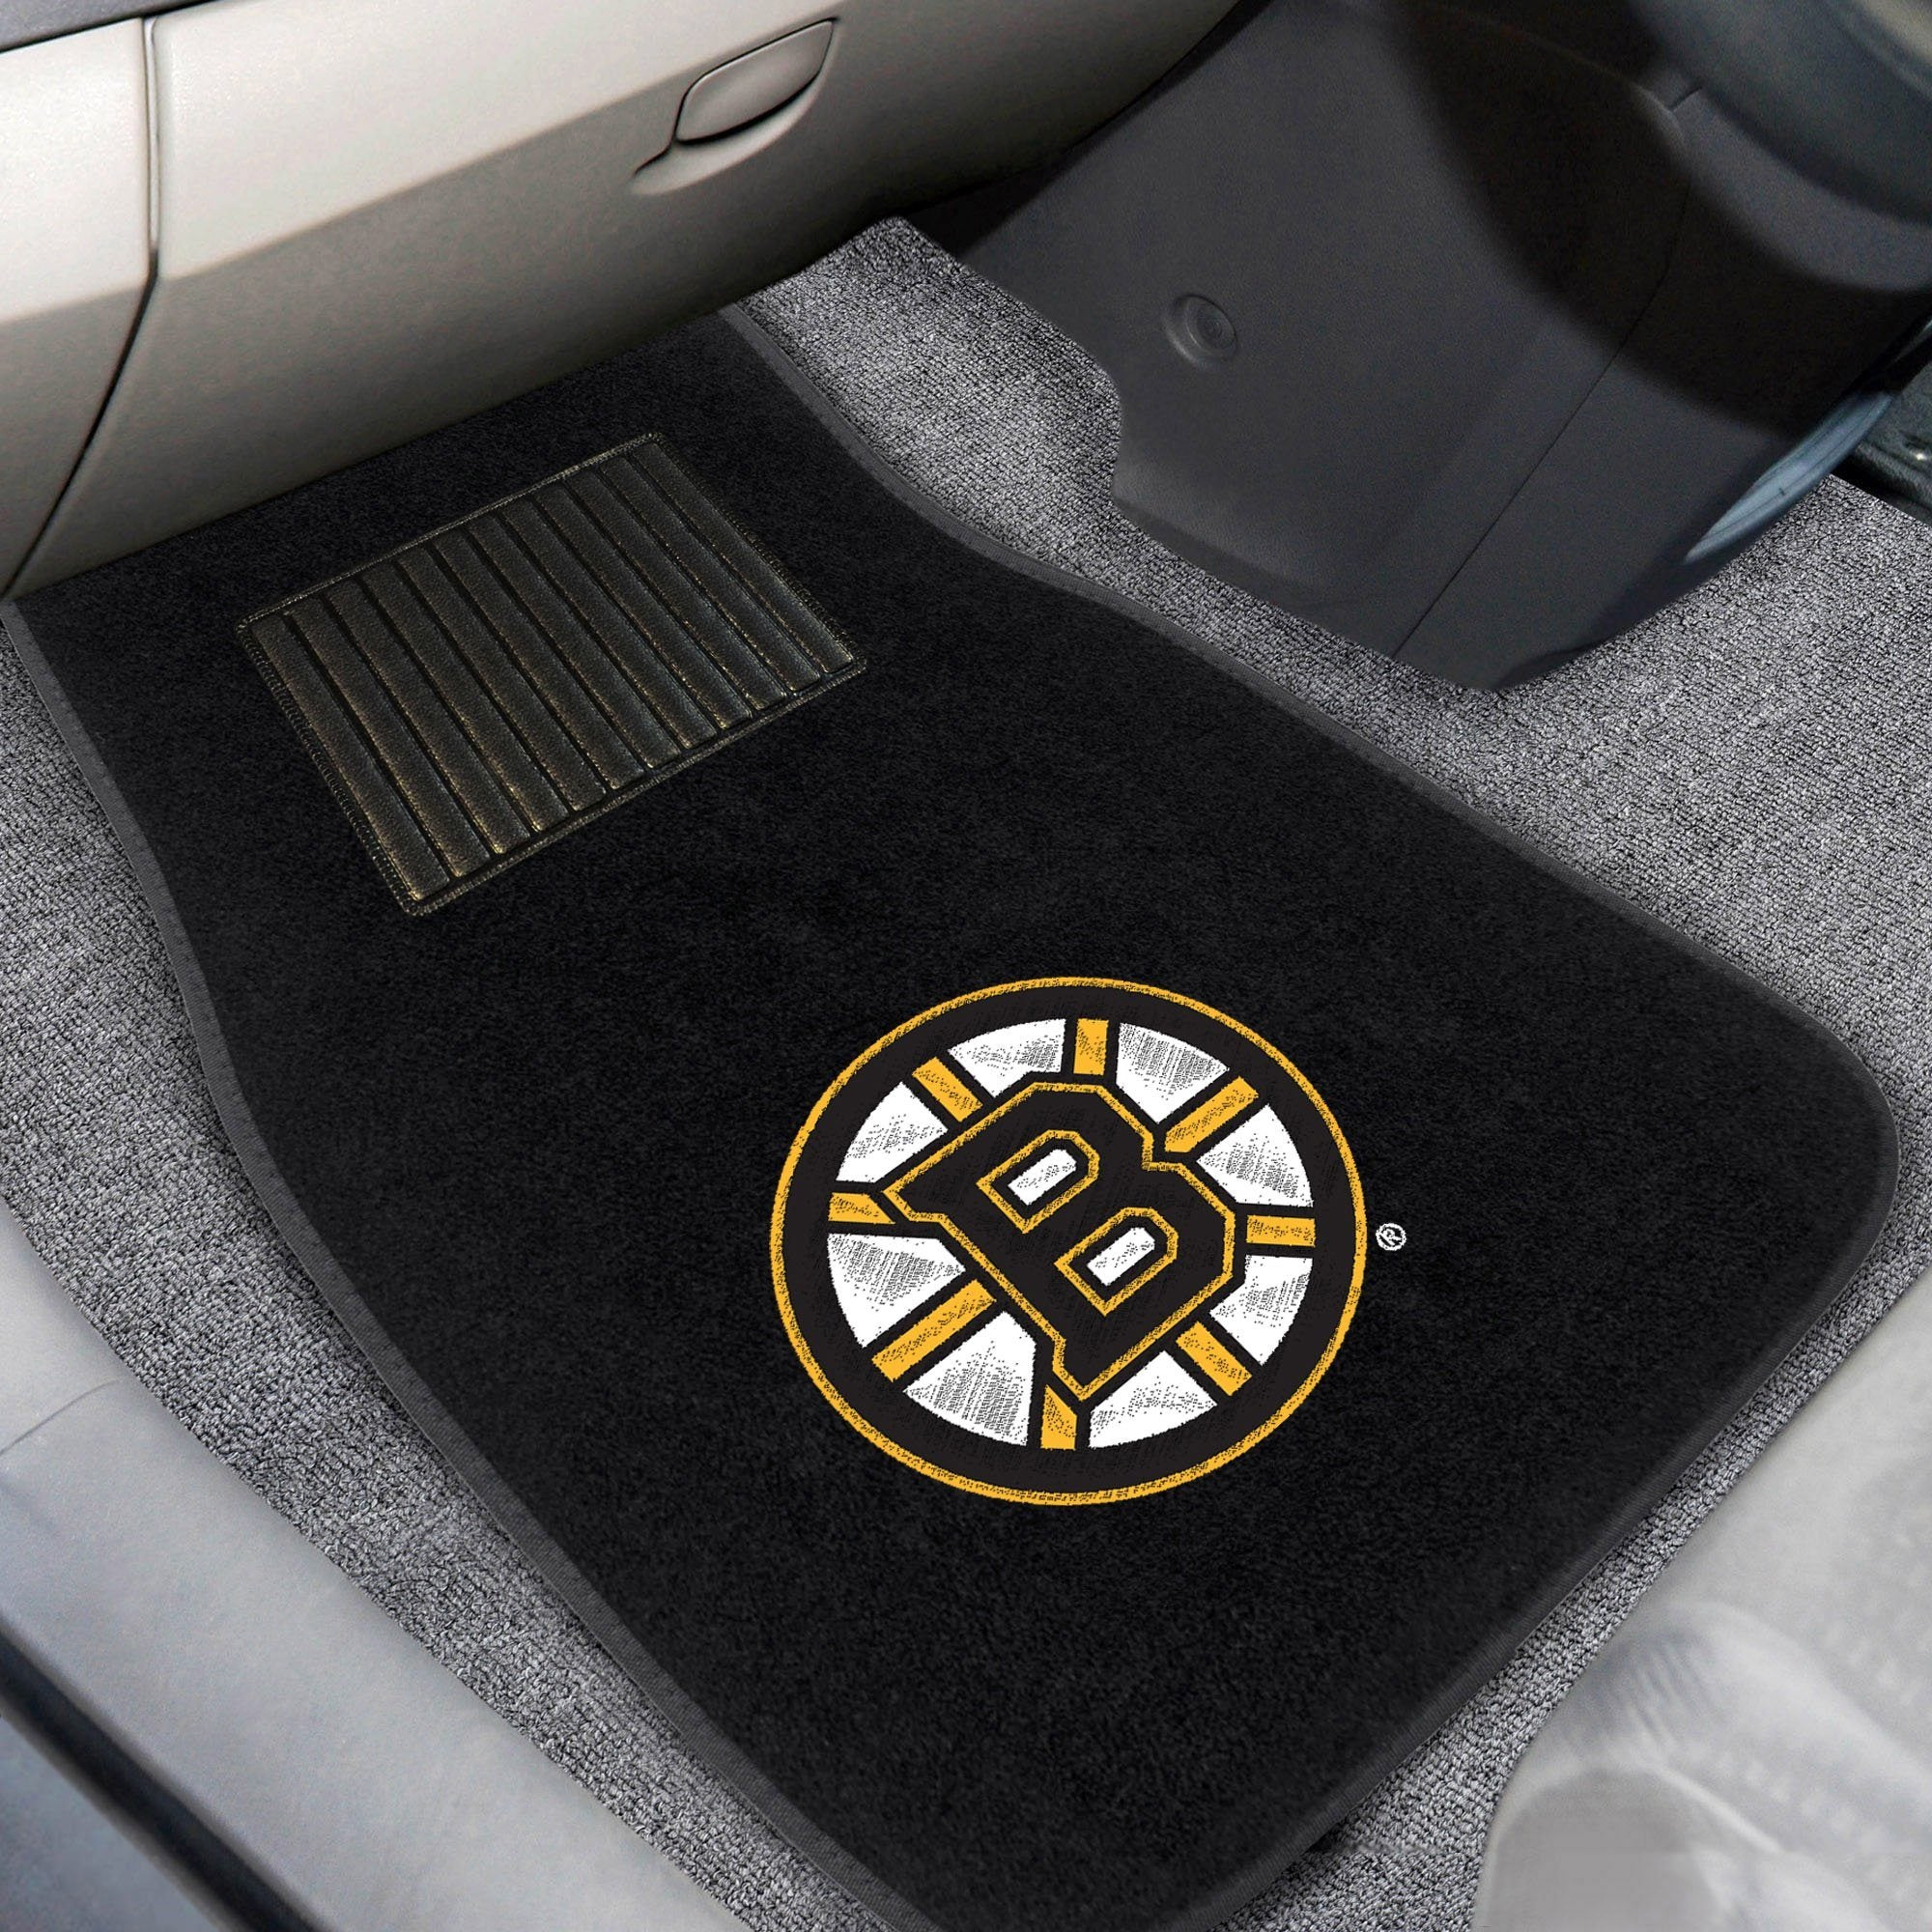 NHL - Embroidered Car Mat, 2-Piece Set NHL Mats, Front Car Mats, 2-pc Embroidered Car Mat Set, NHL, Auto Fan Mats Anaheim Ducks